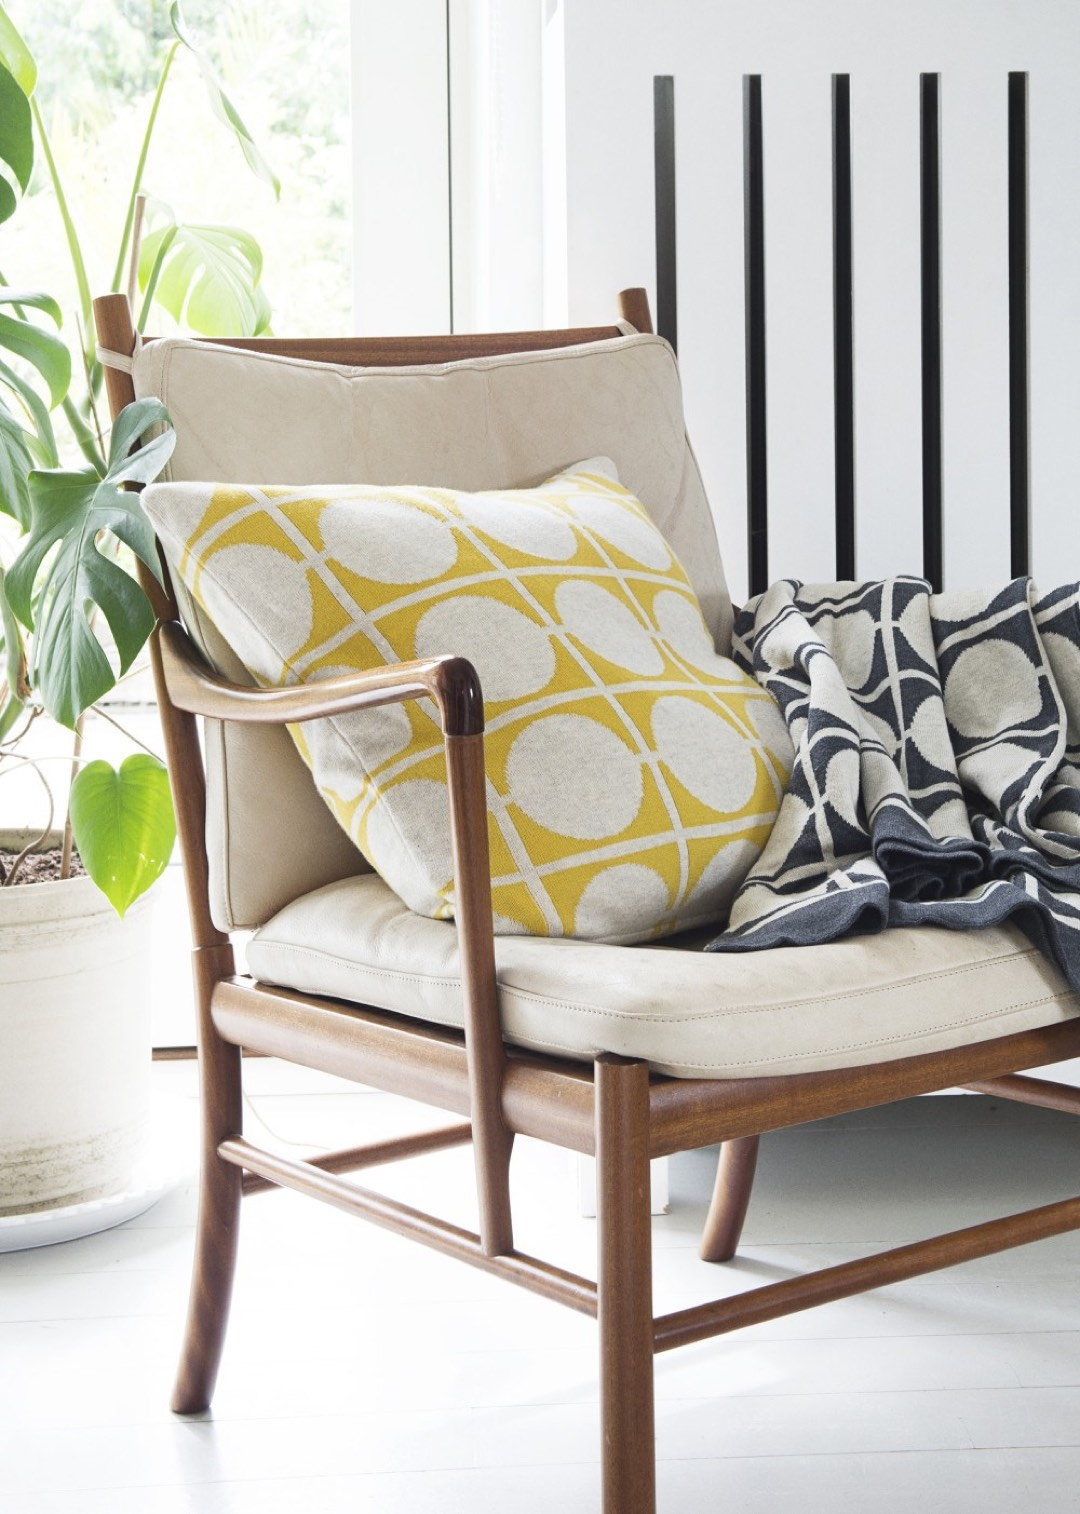 Norwegian Interiors funkydoris - a norwegian interiors brand